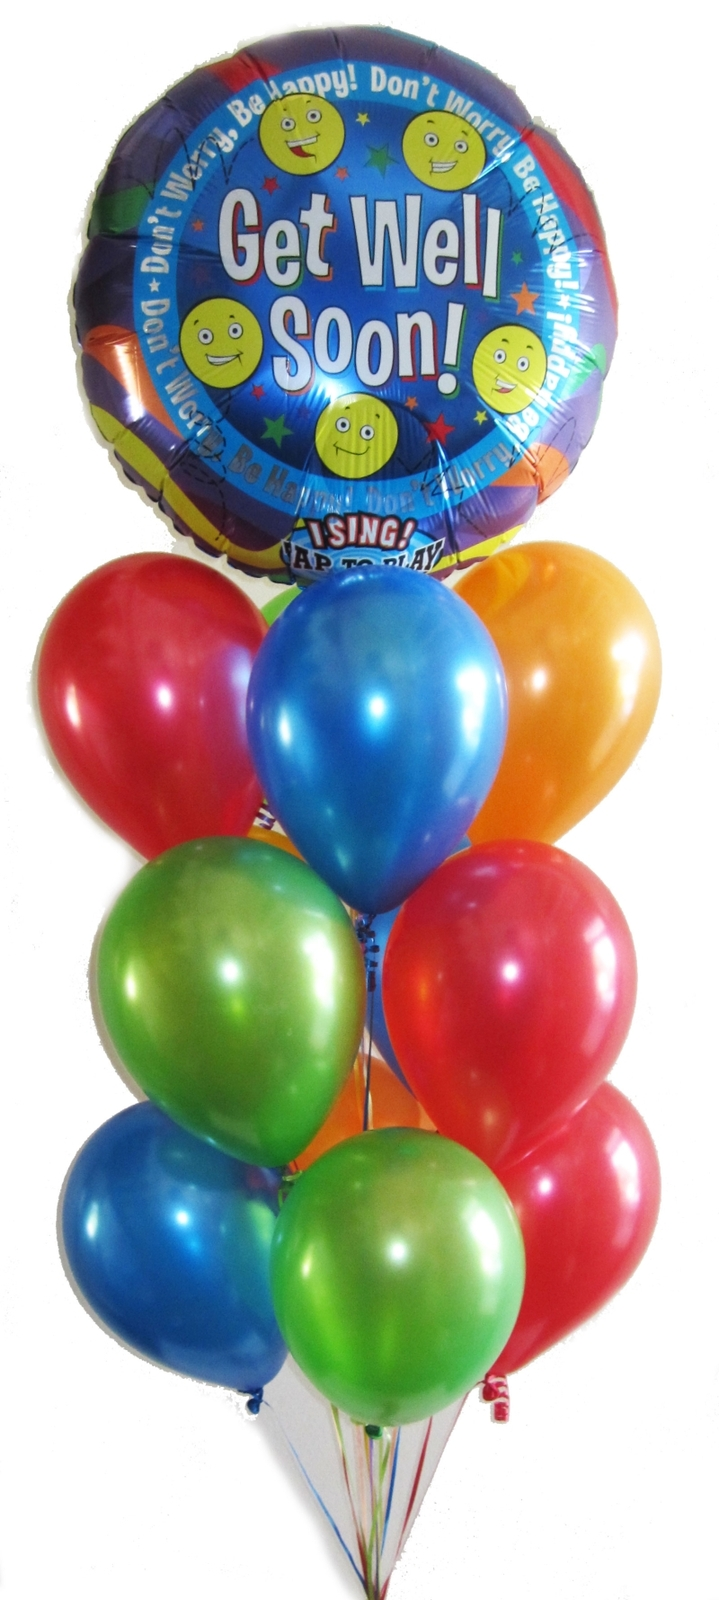 Singing Balloons Helium Perth Get Well Soon